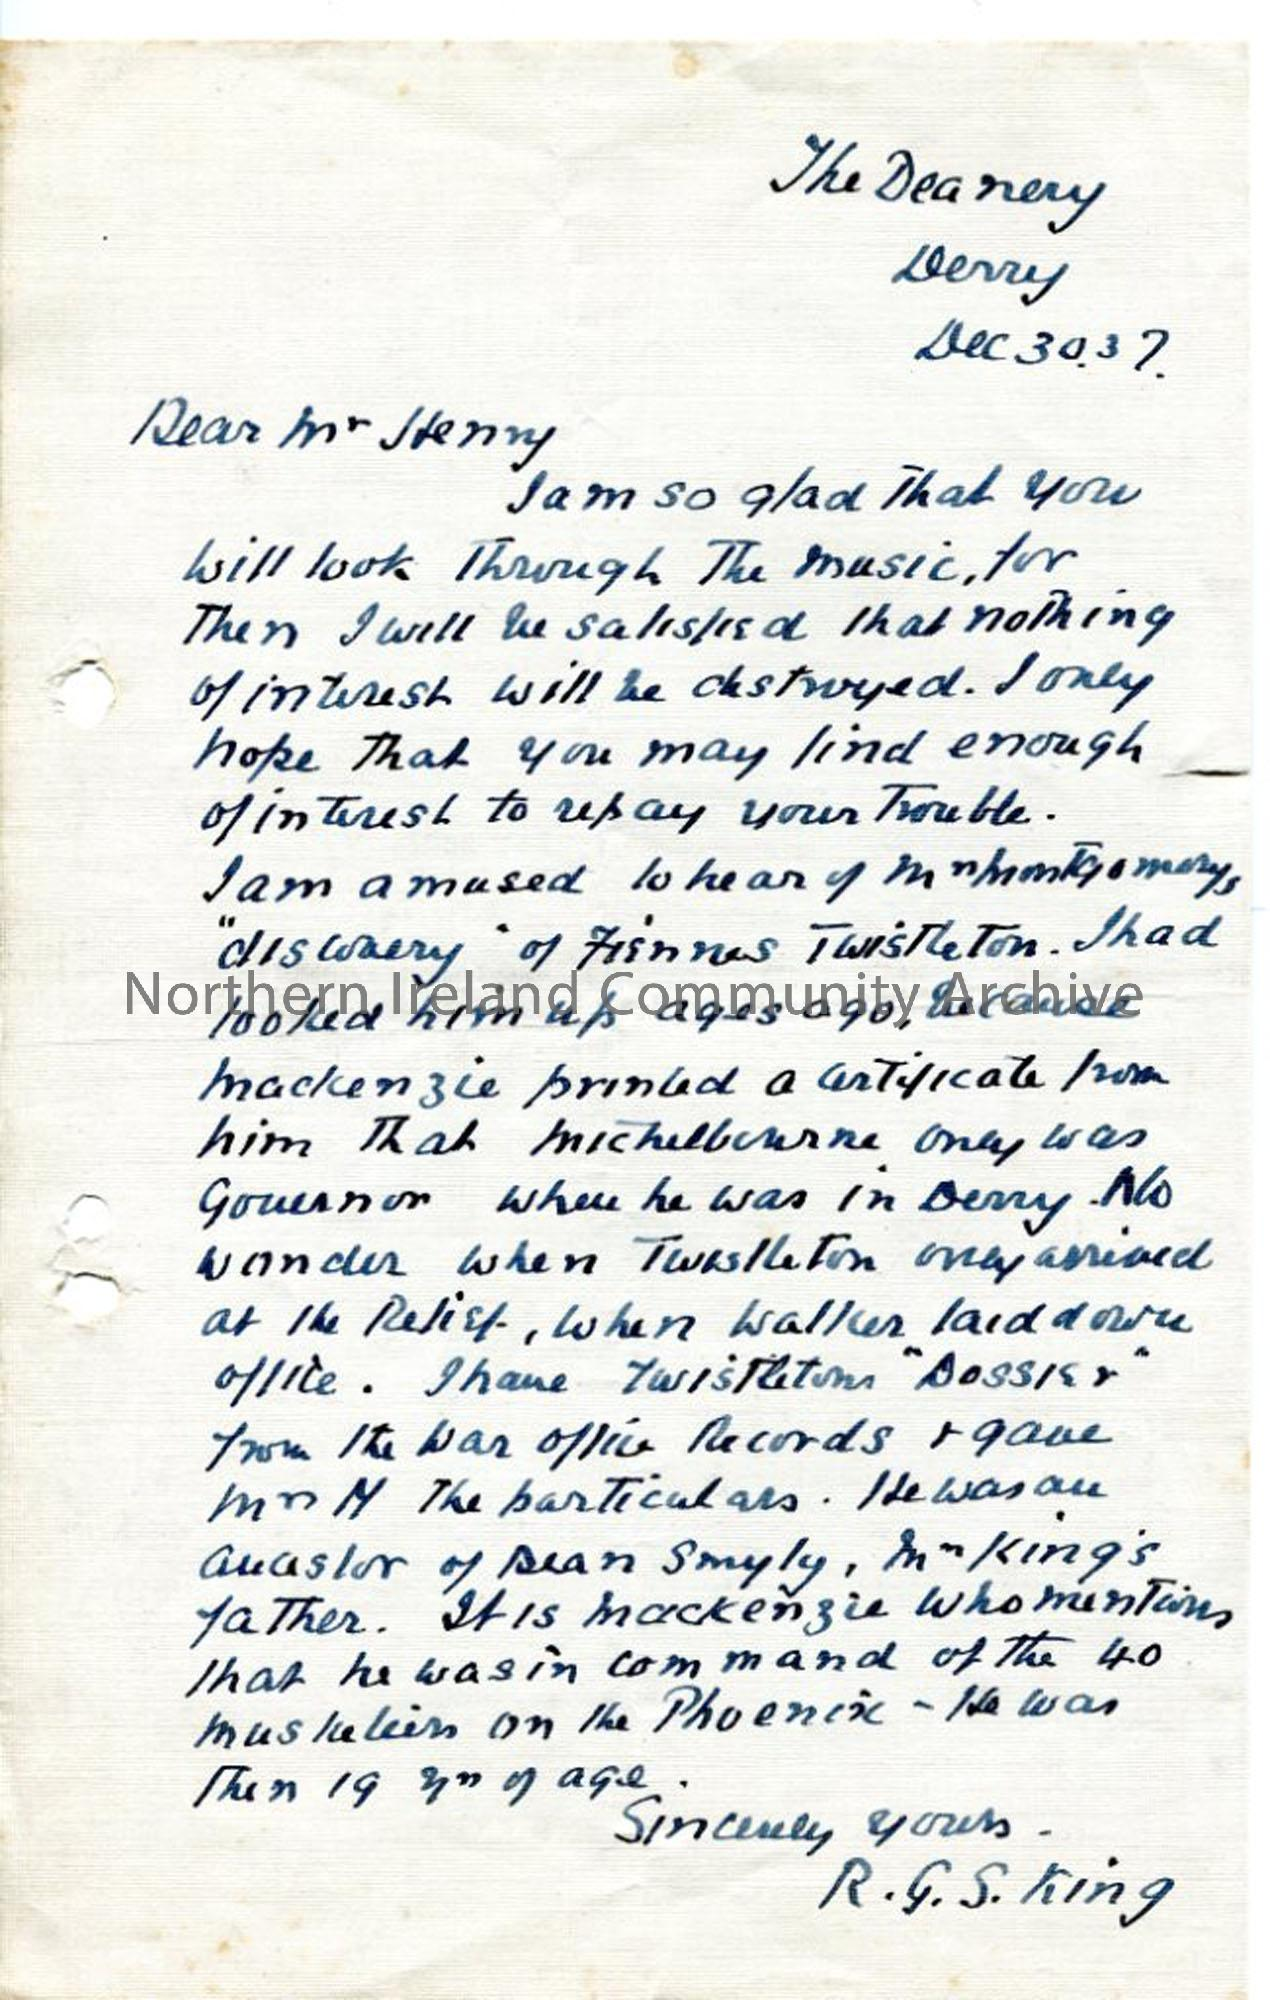 Letter from R. G. S. King, 30.12.1937